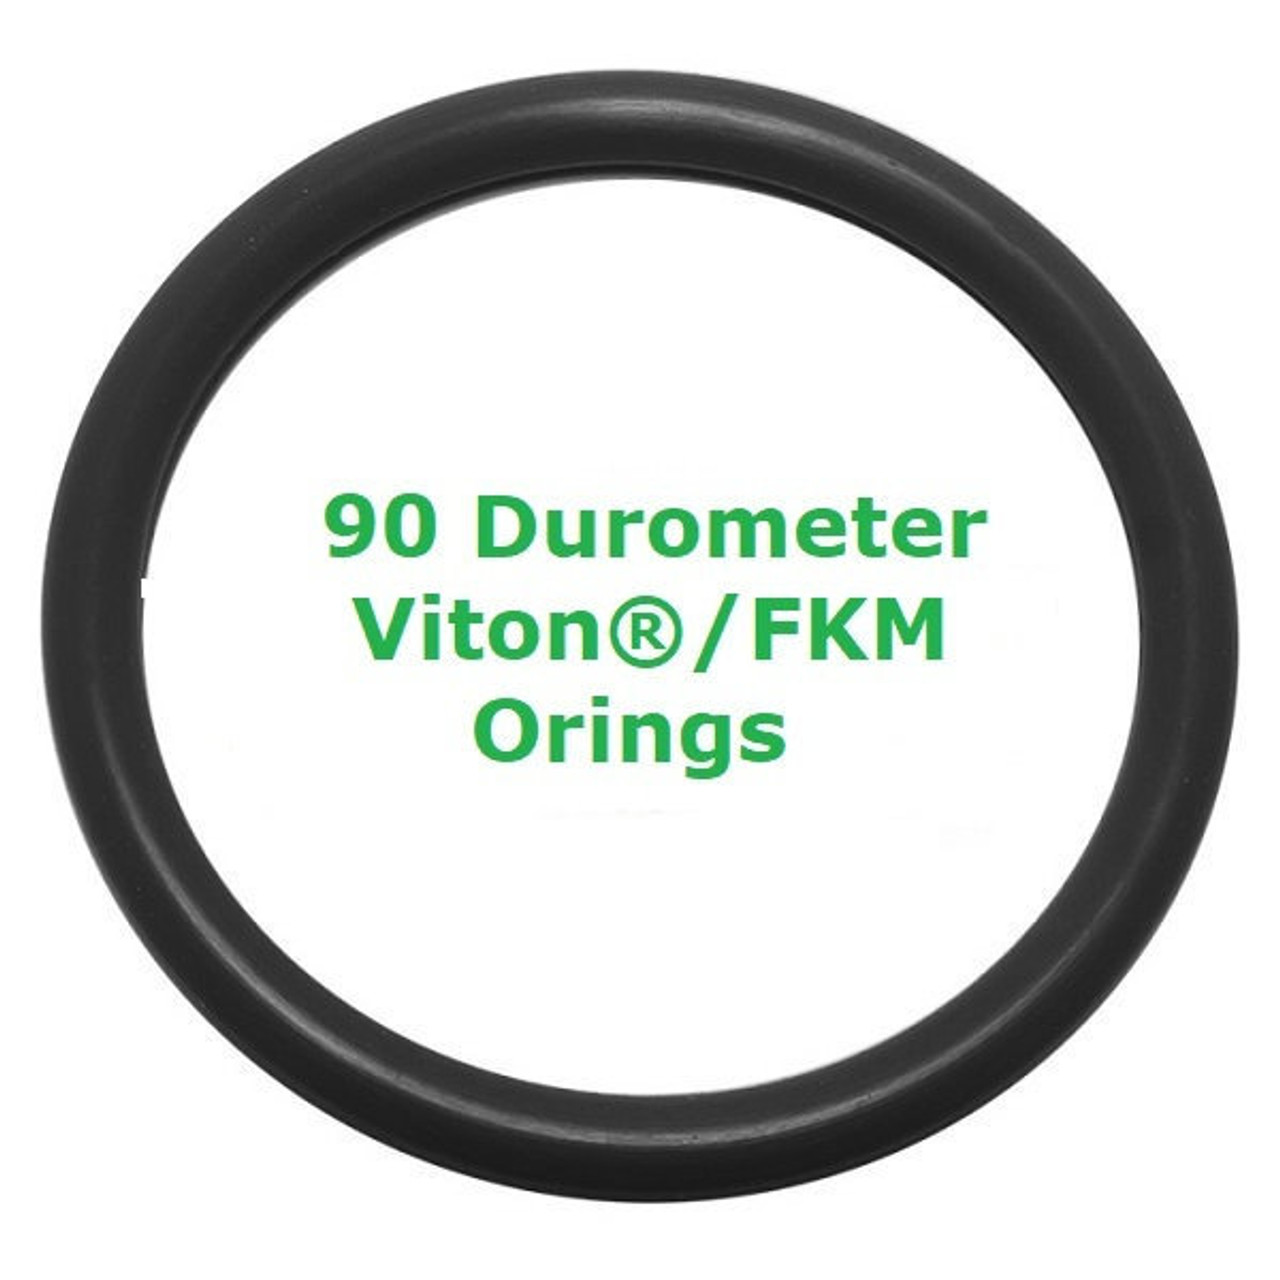 Viton 90 Orings Size 269 Price for 1 pc